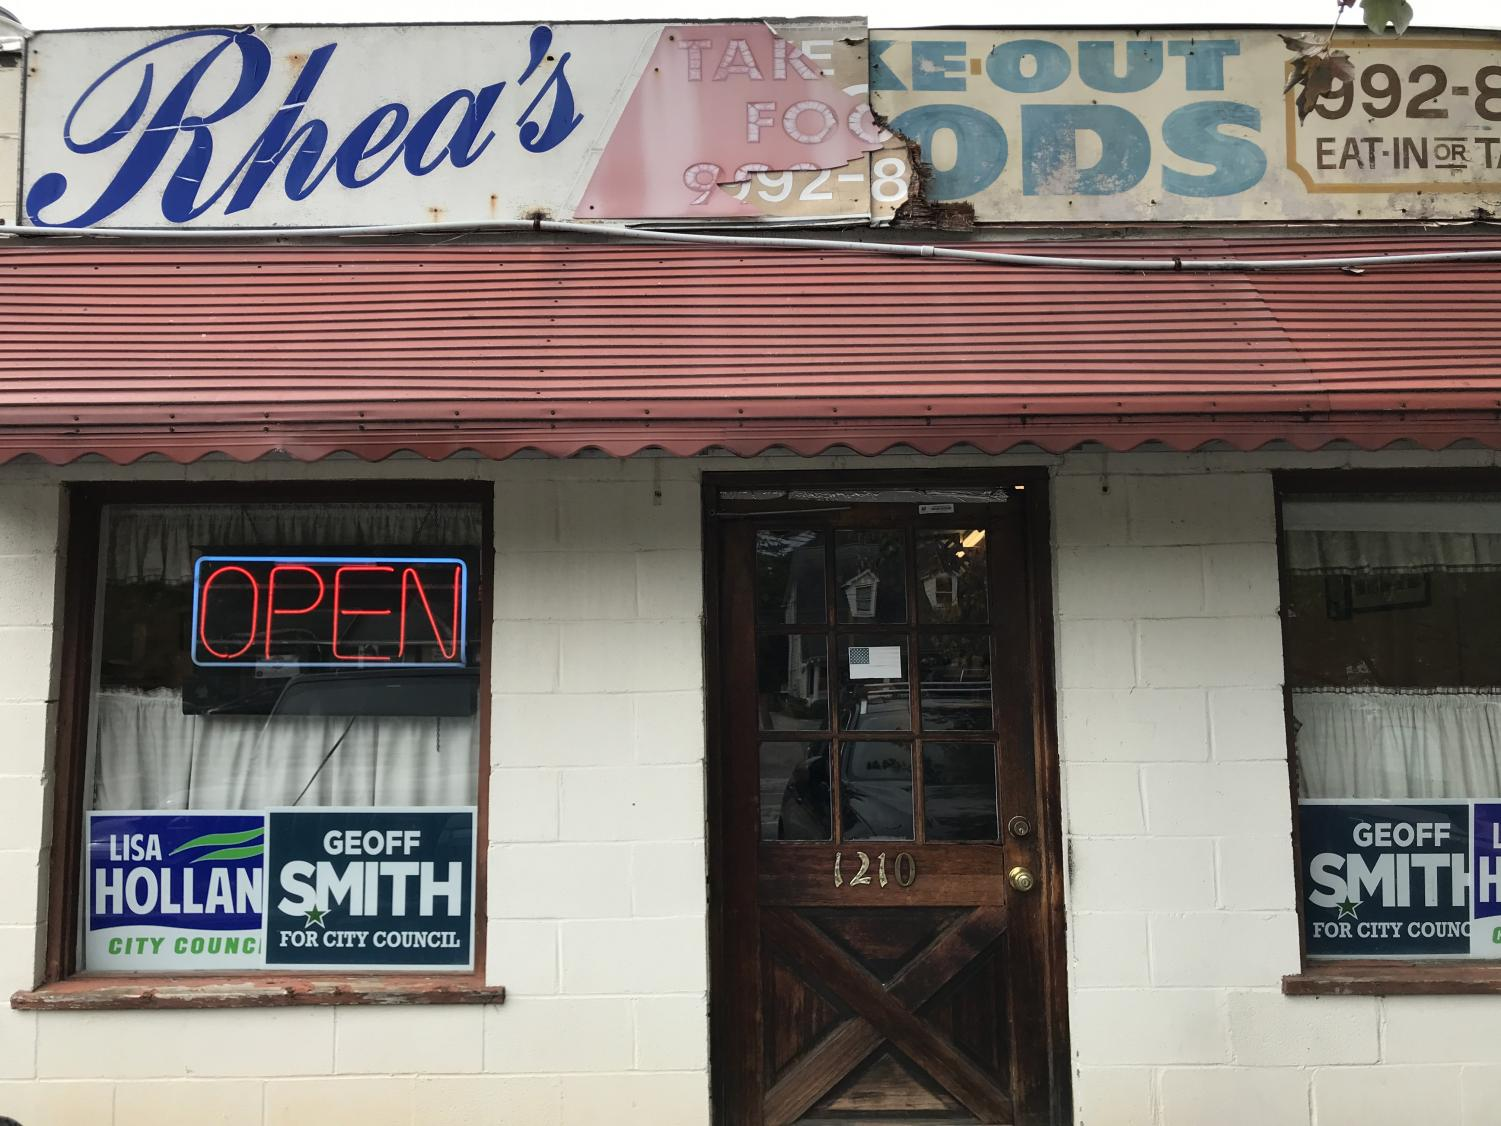 Rhea's Take Out Foods faces Canton Street, right next to the Corner Grocery. Photo Credit: Claire Mulkey